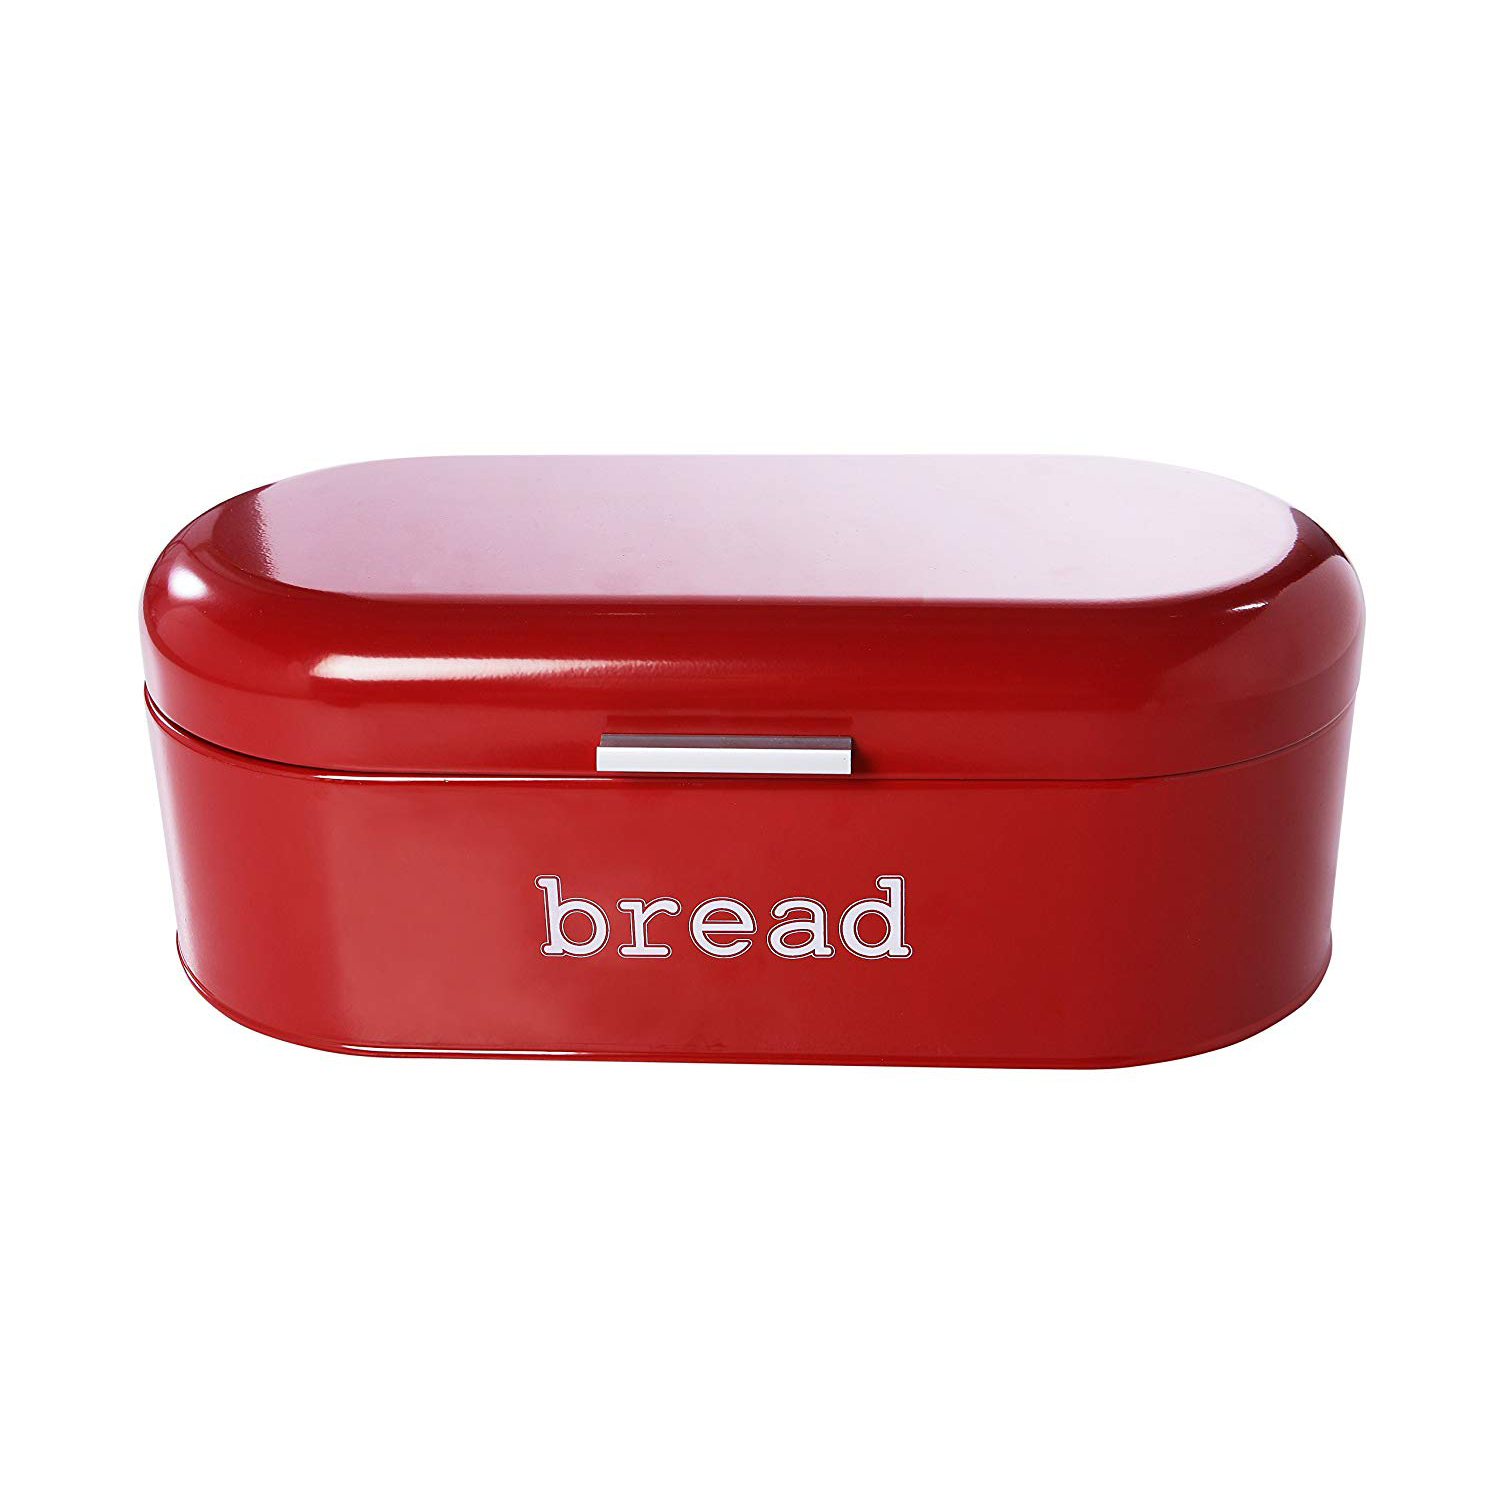 Large Bread Box for Kitchen Counter - Bread Bin Storage Container With Lid